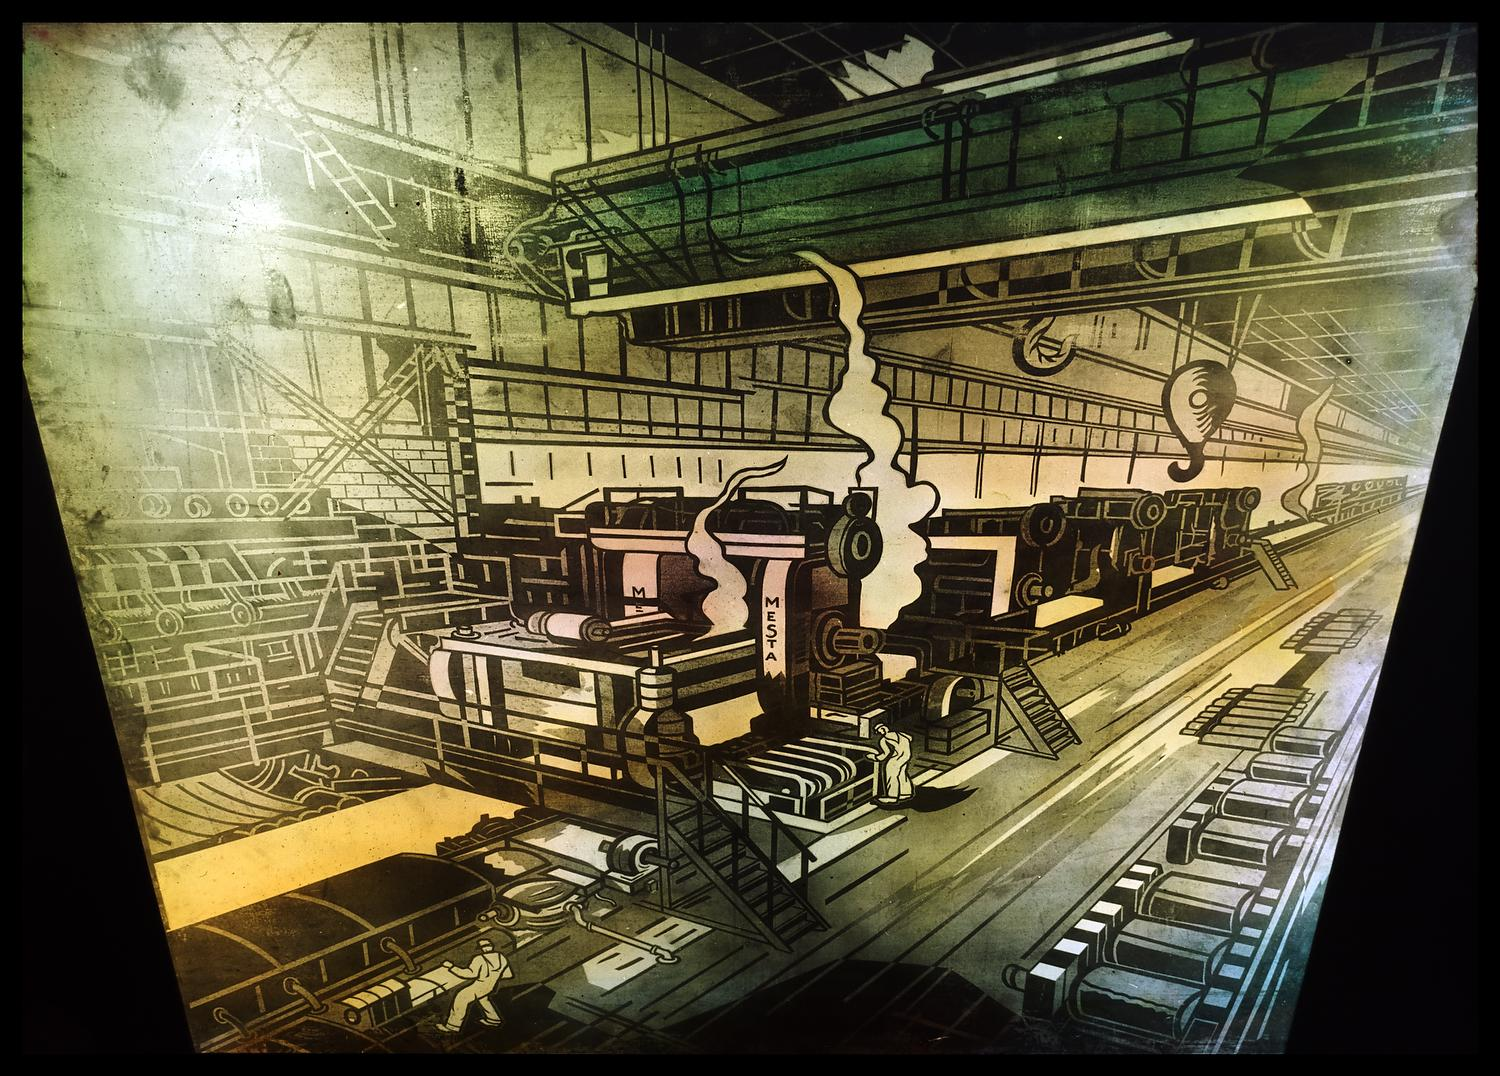 [A mural representing industry and industrialization. This picture depicts a the workshop floor of a factory.]